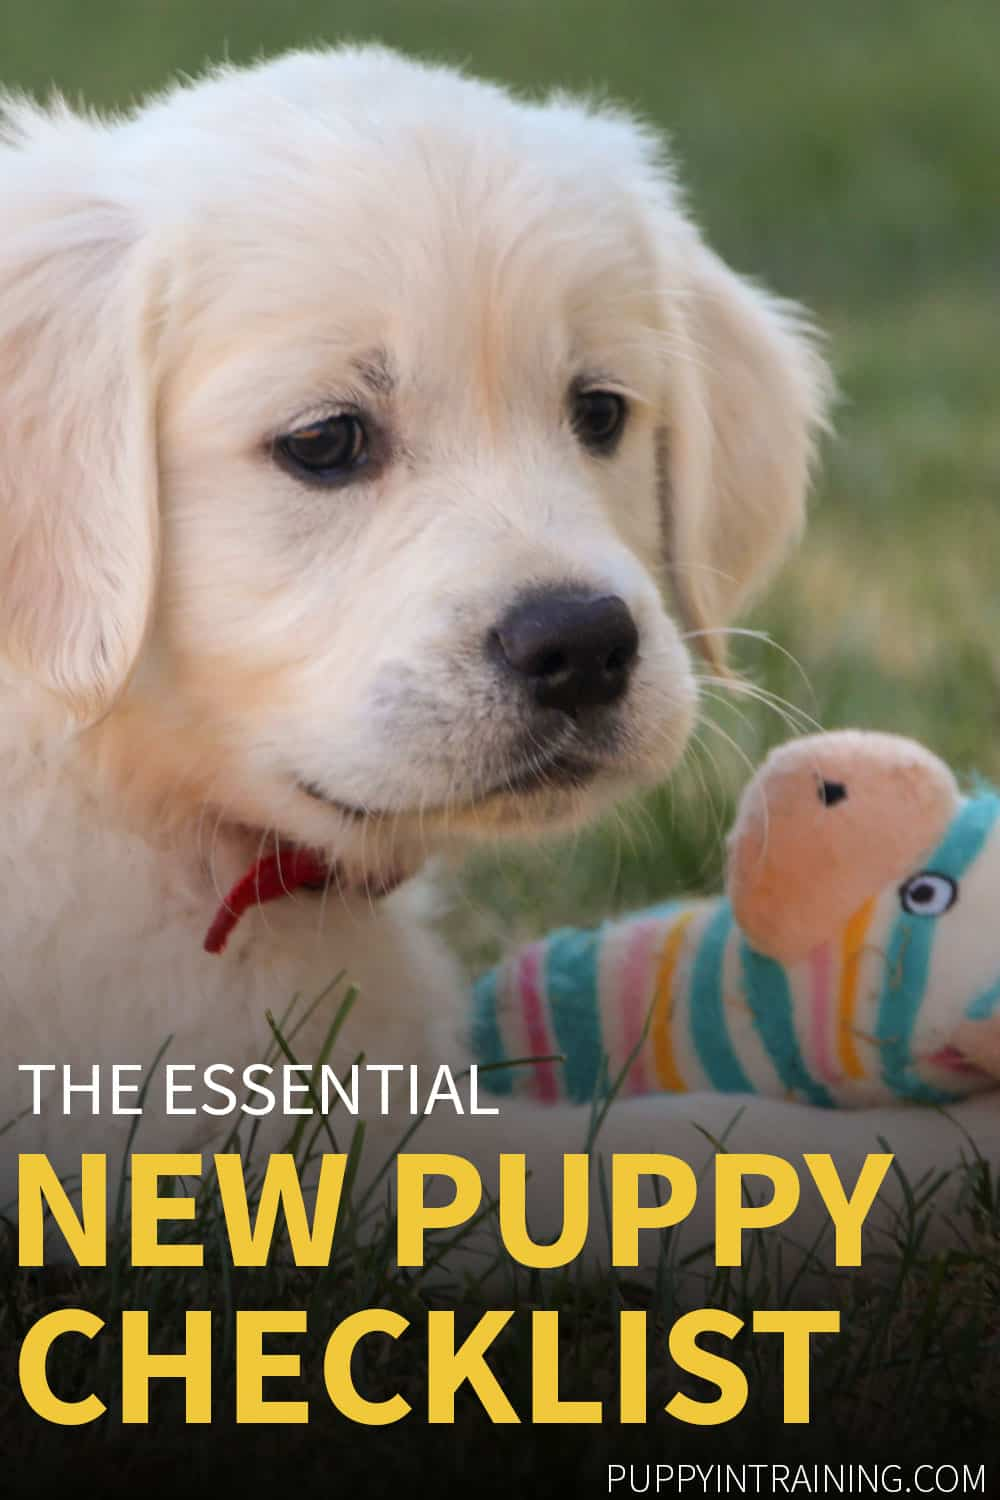 New Puppy Checklist 2021 I M Getting A New Puppy What Do I Need Puppy In Training